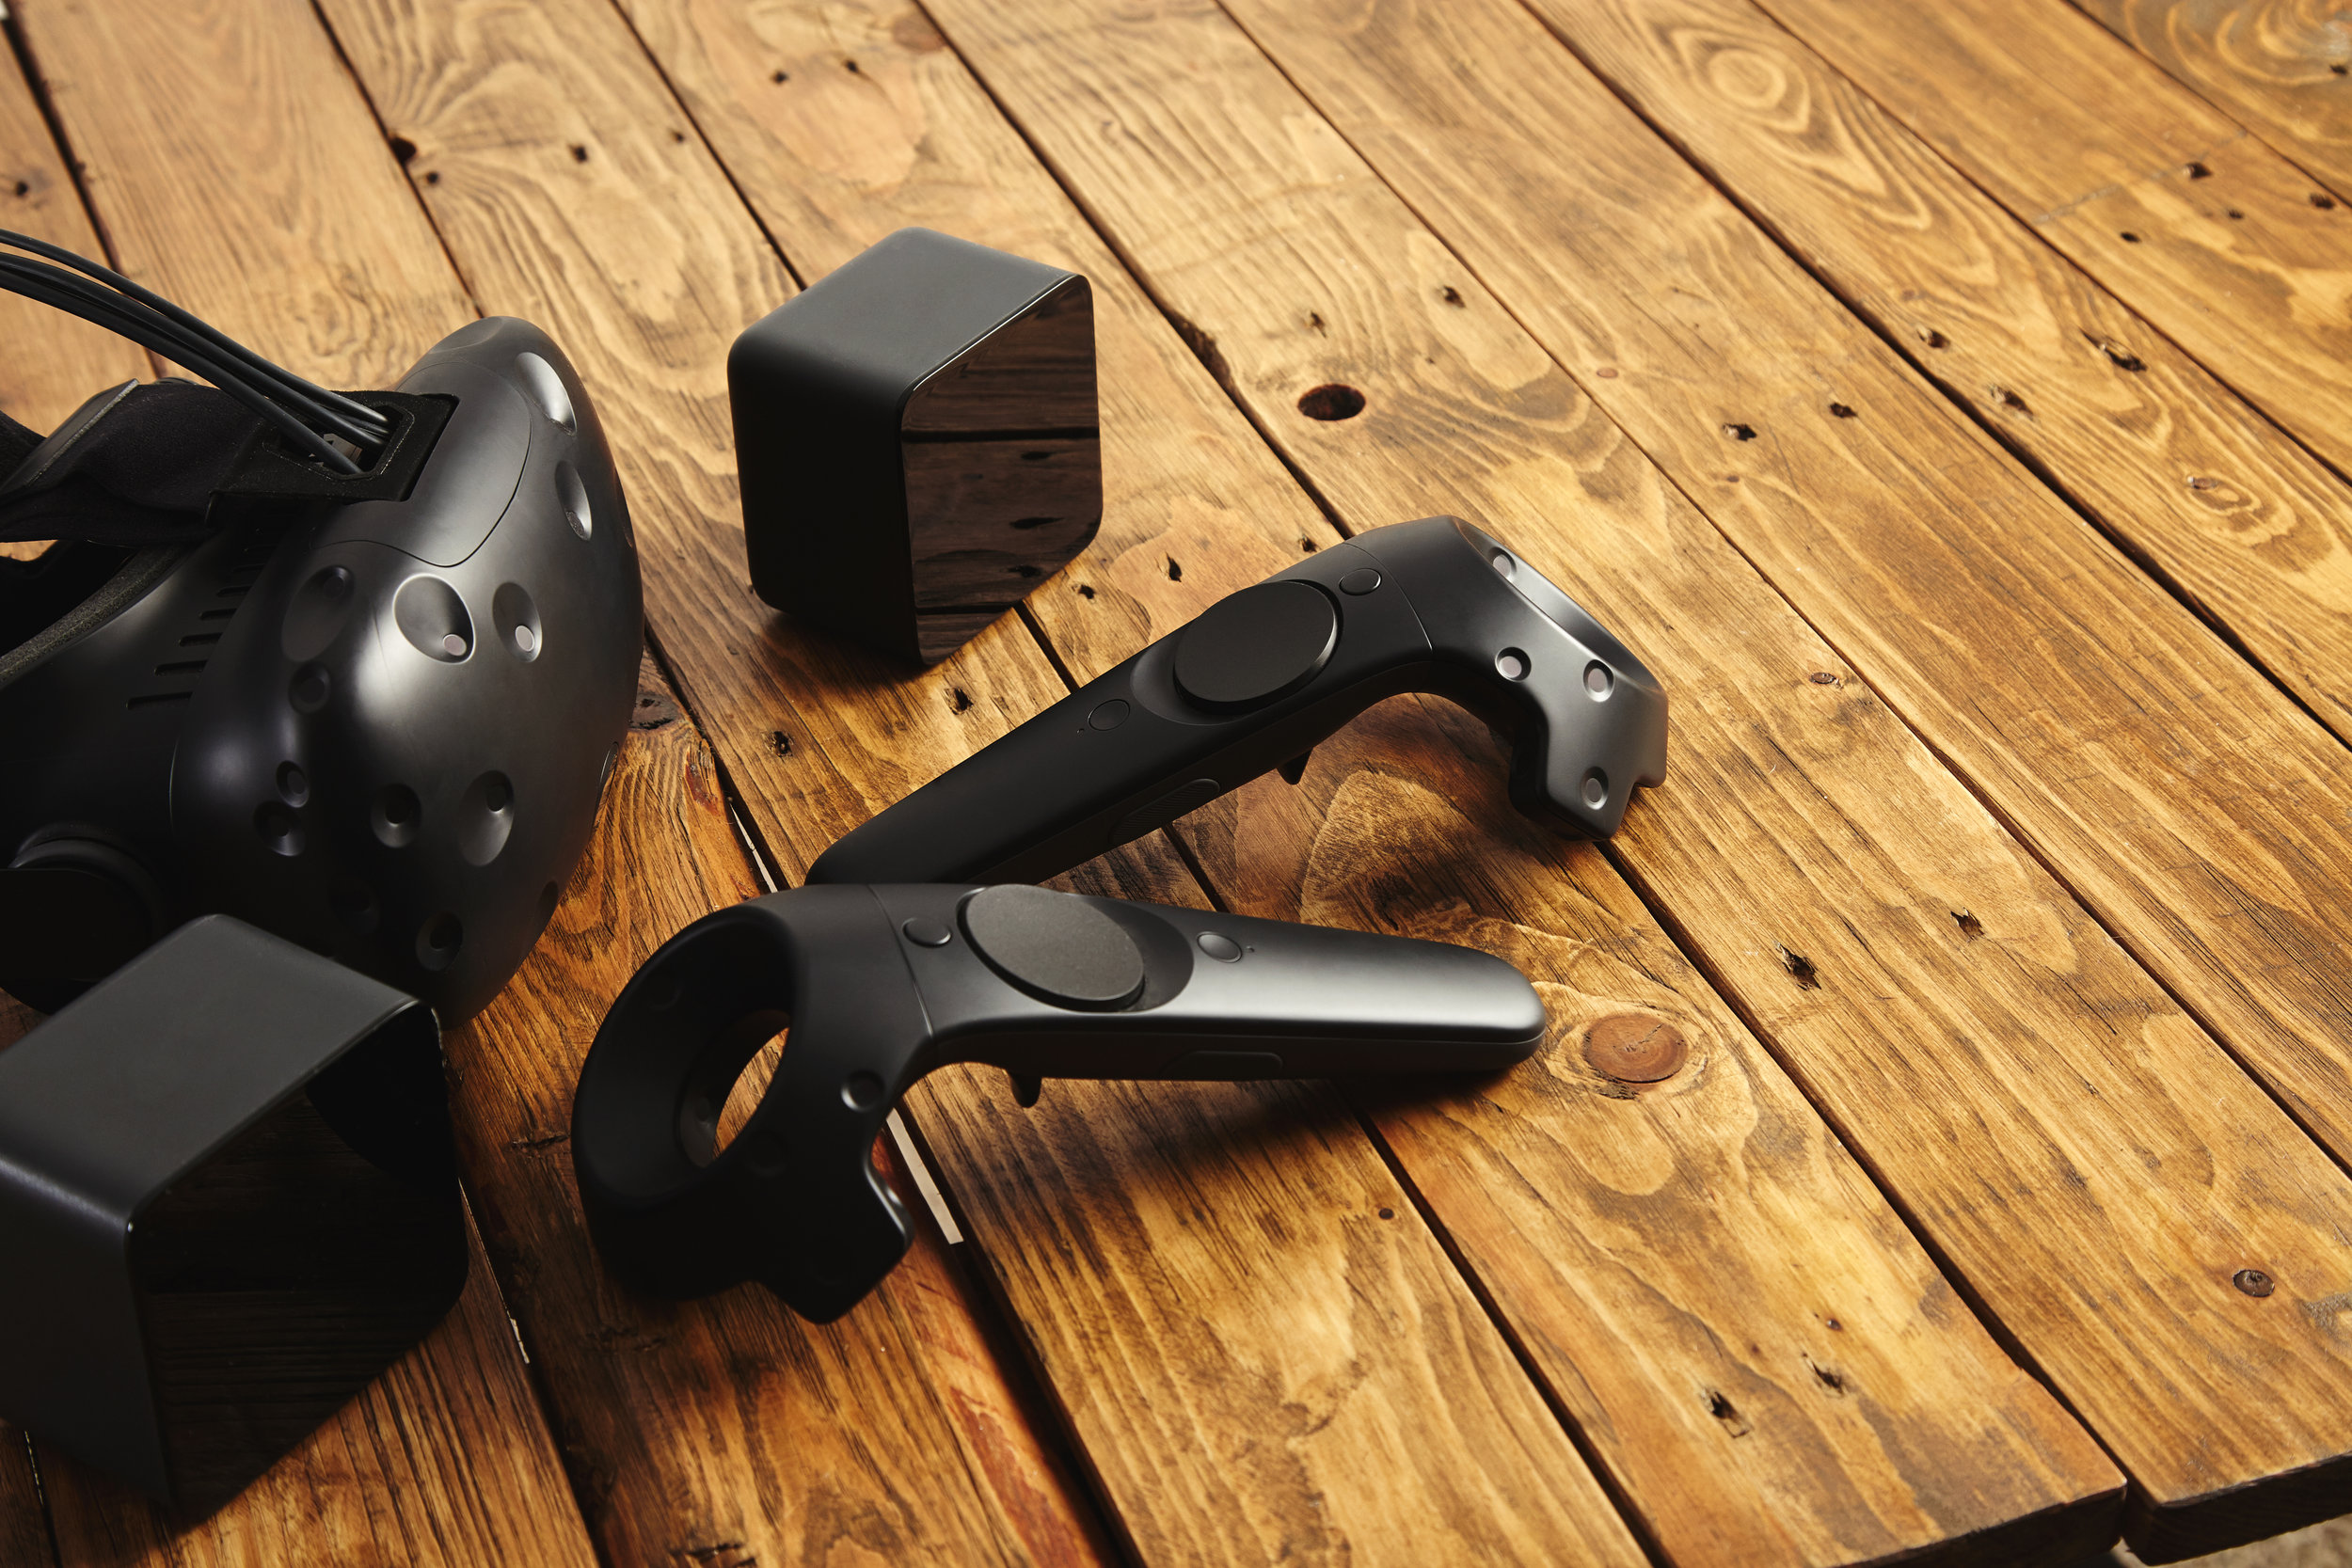 VR-controllers.jpeg